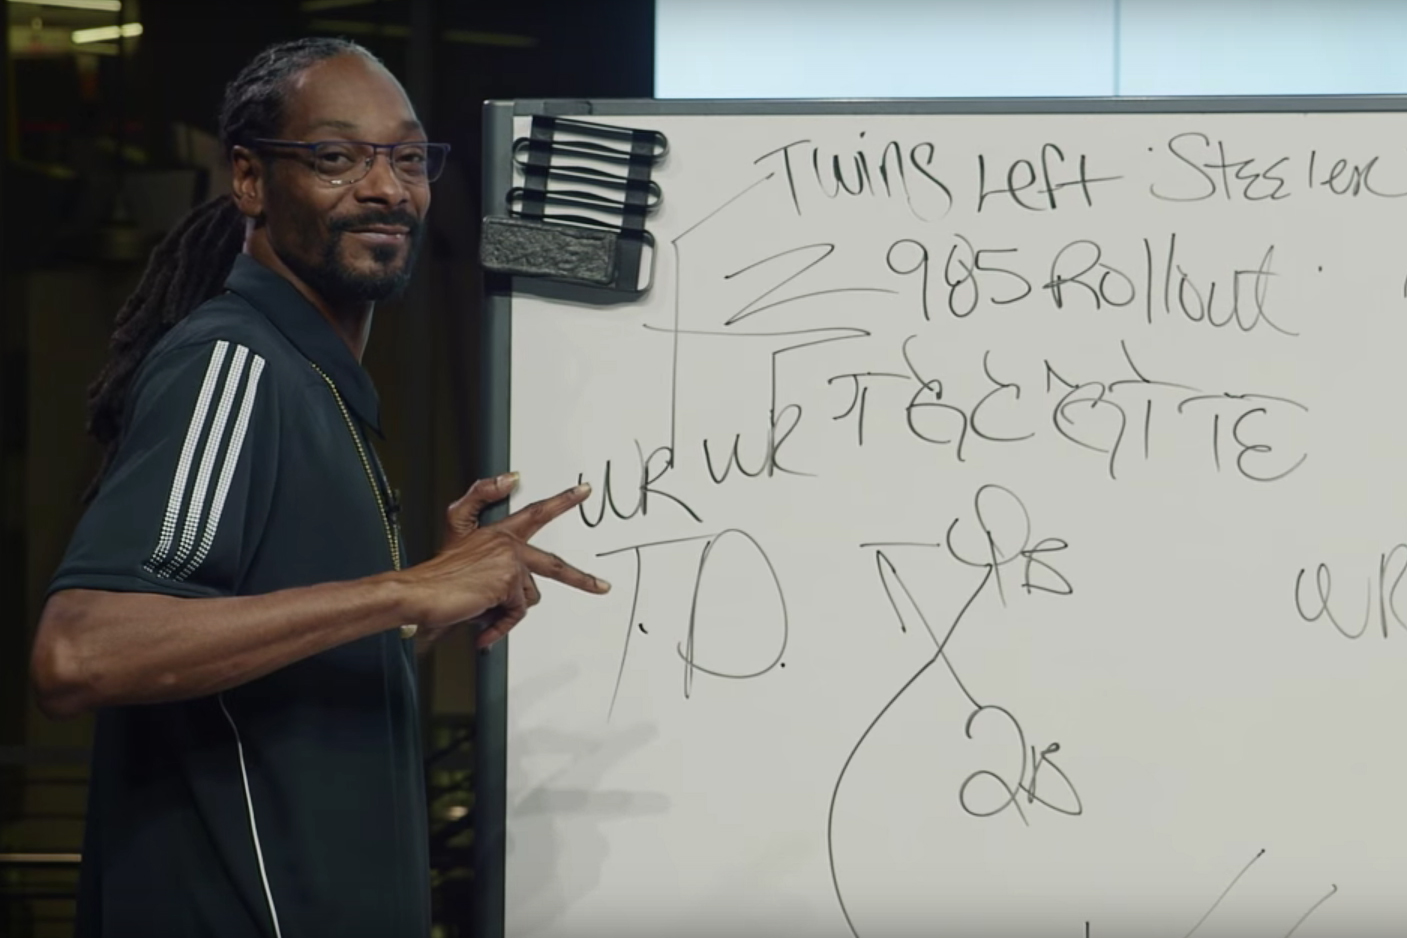 Snoop Dogg & adidas Football Team up for Brand New 'Turf'd Up' Series